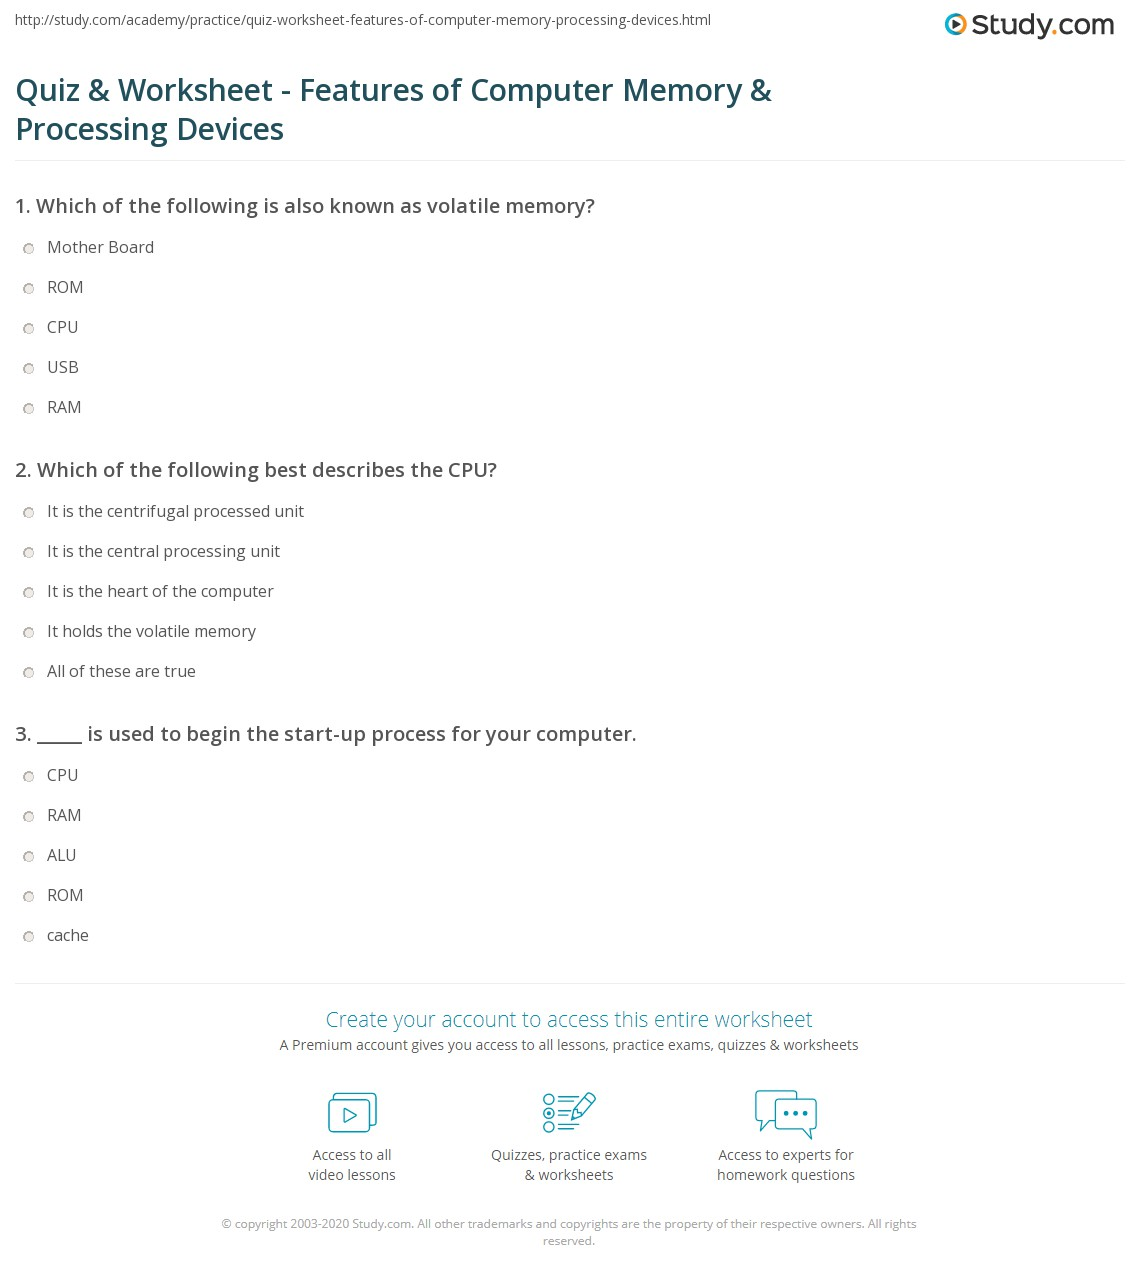 quiz worksheet features of computer memory processing devices. Black Bedroom Furniture Sets. Home Design Ideas